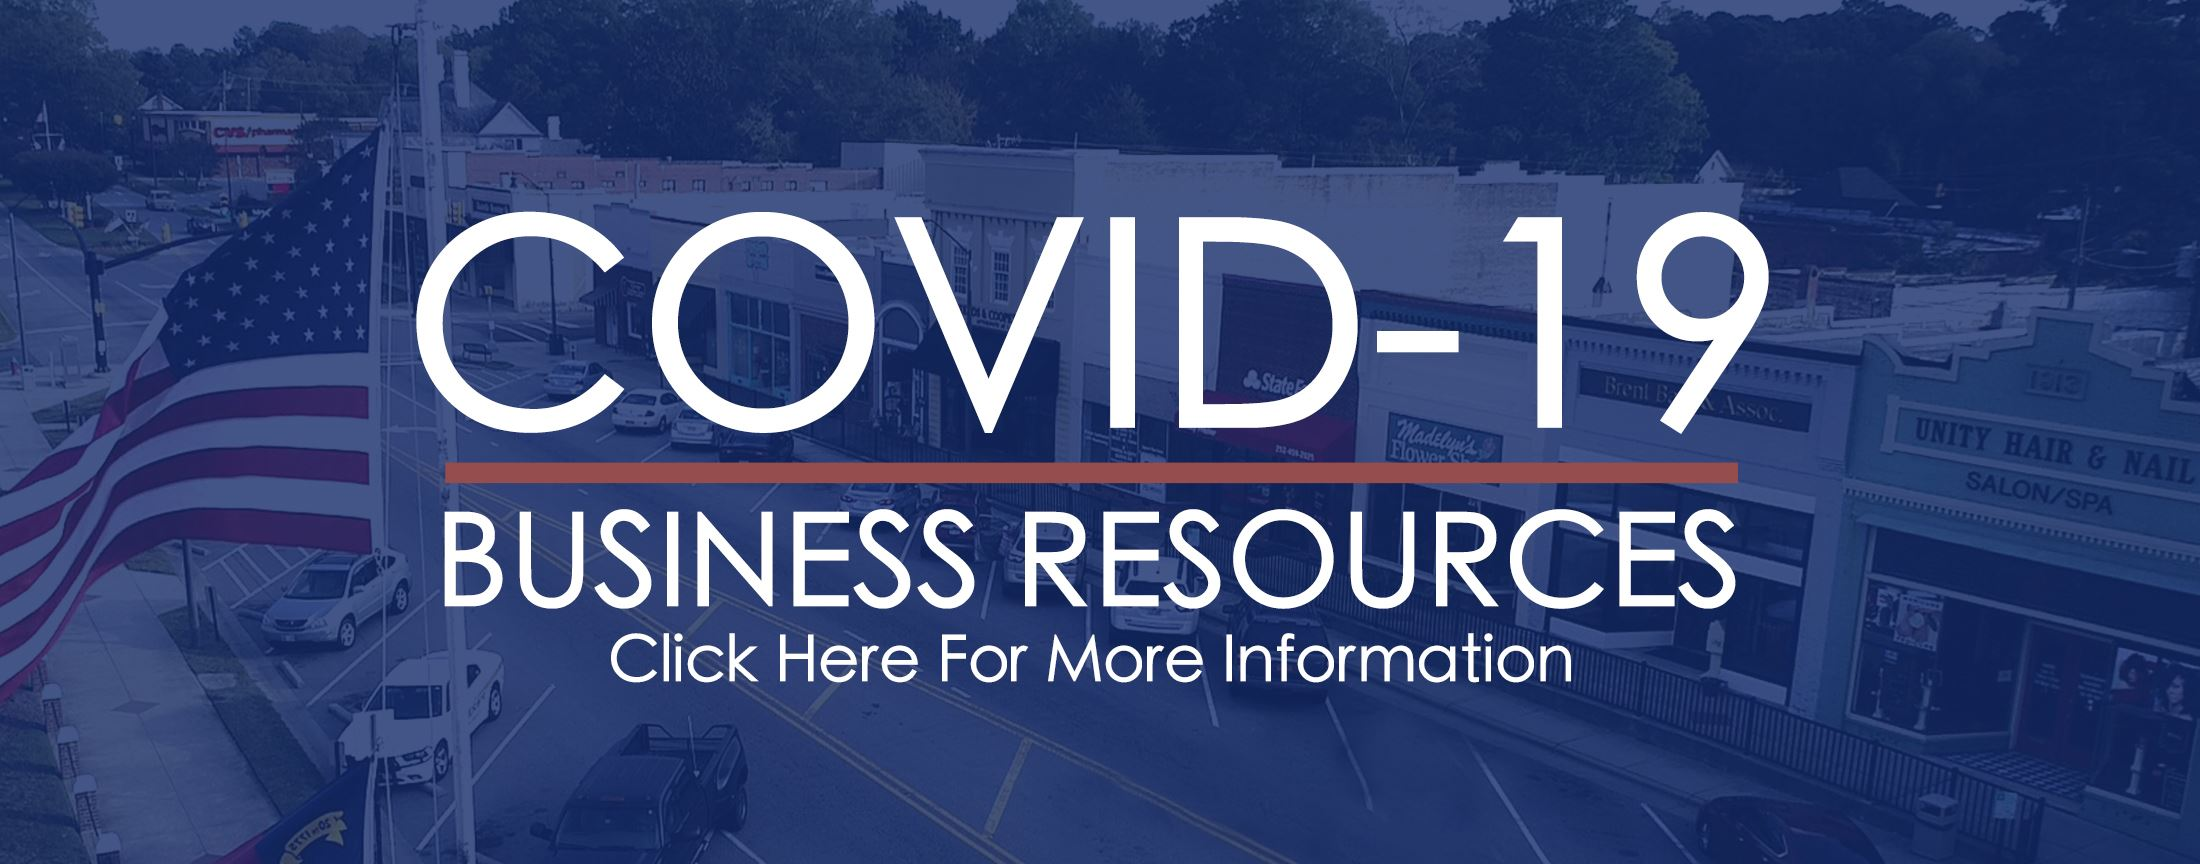 COVID BUSINESS